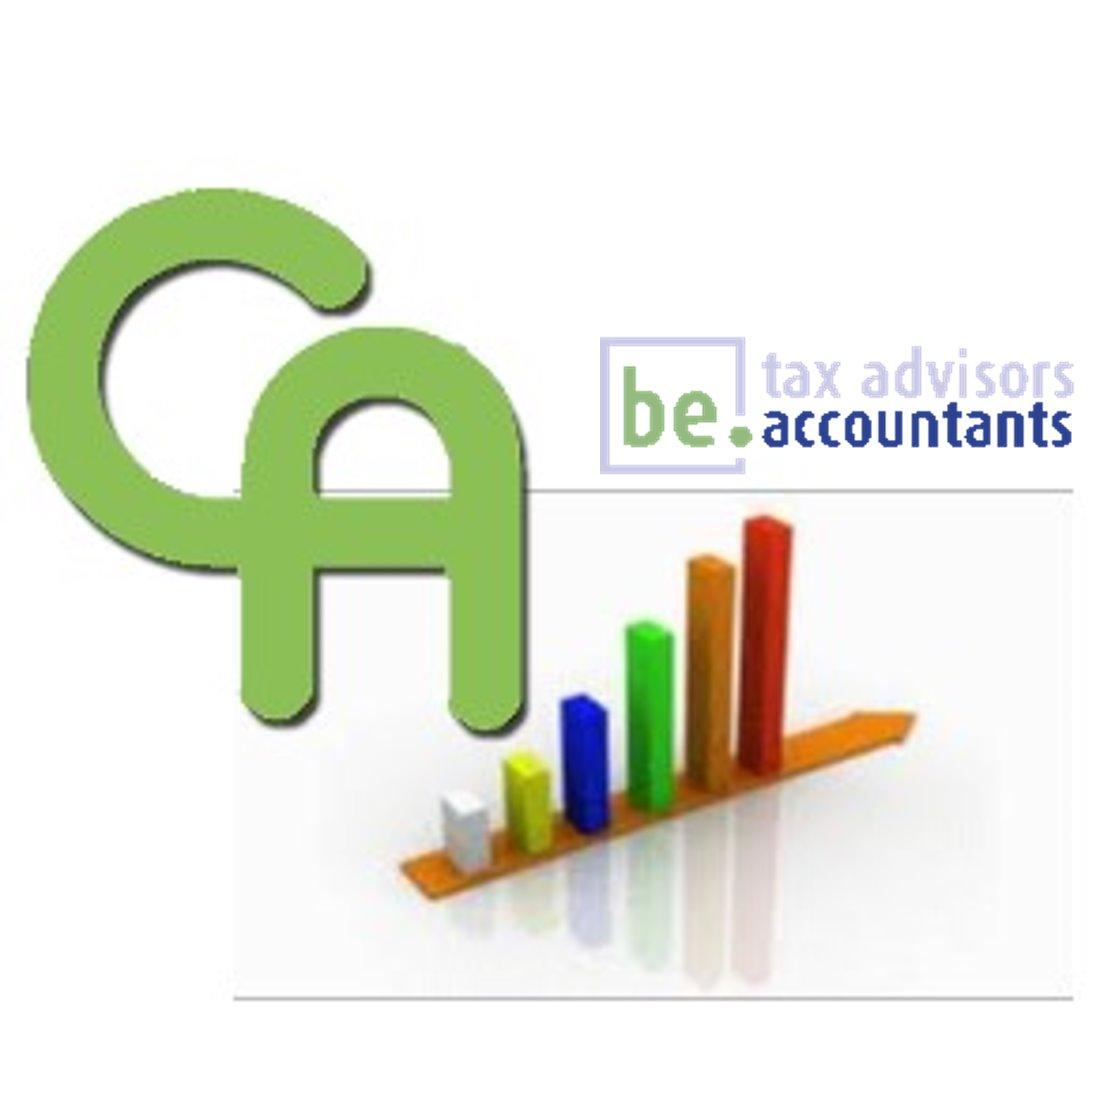 Chris Accounting SPRL